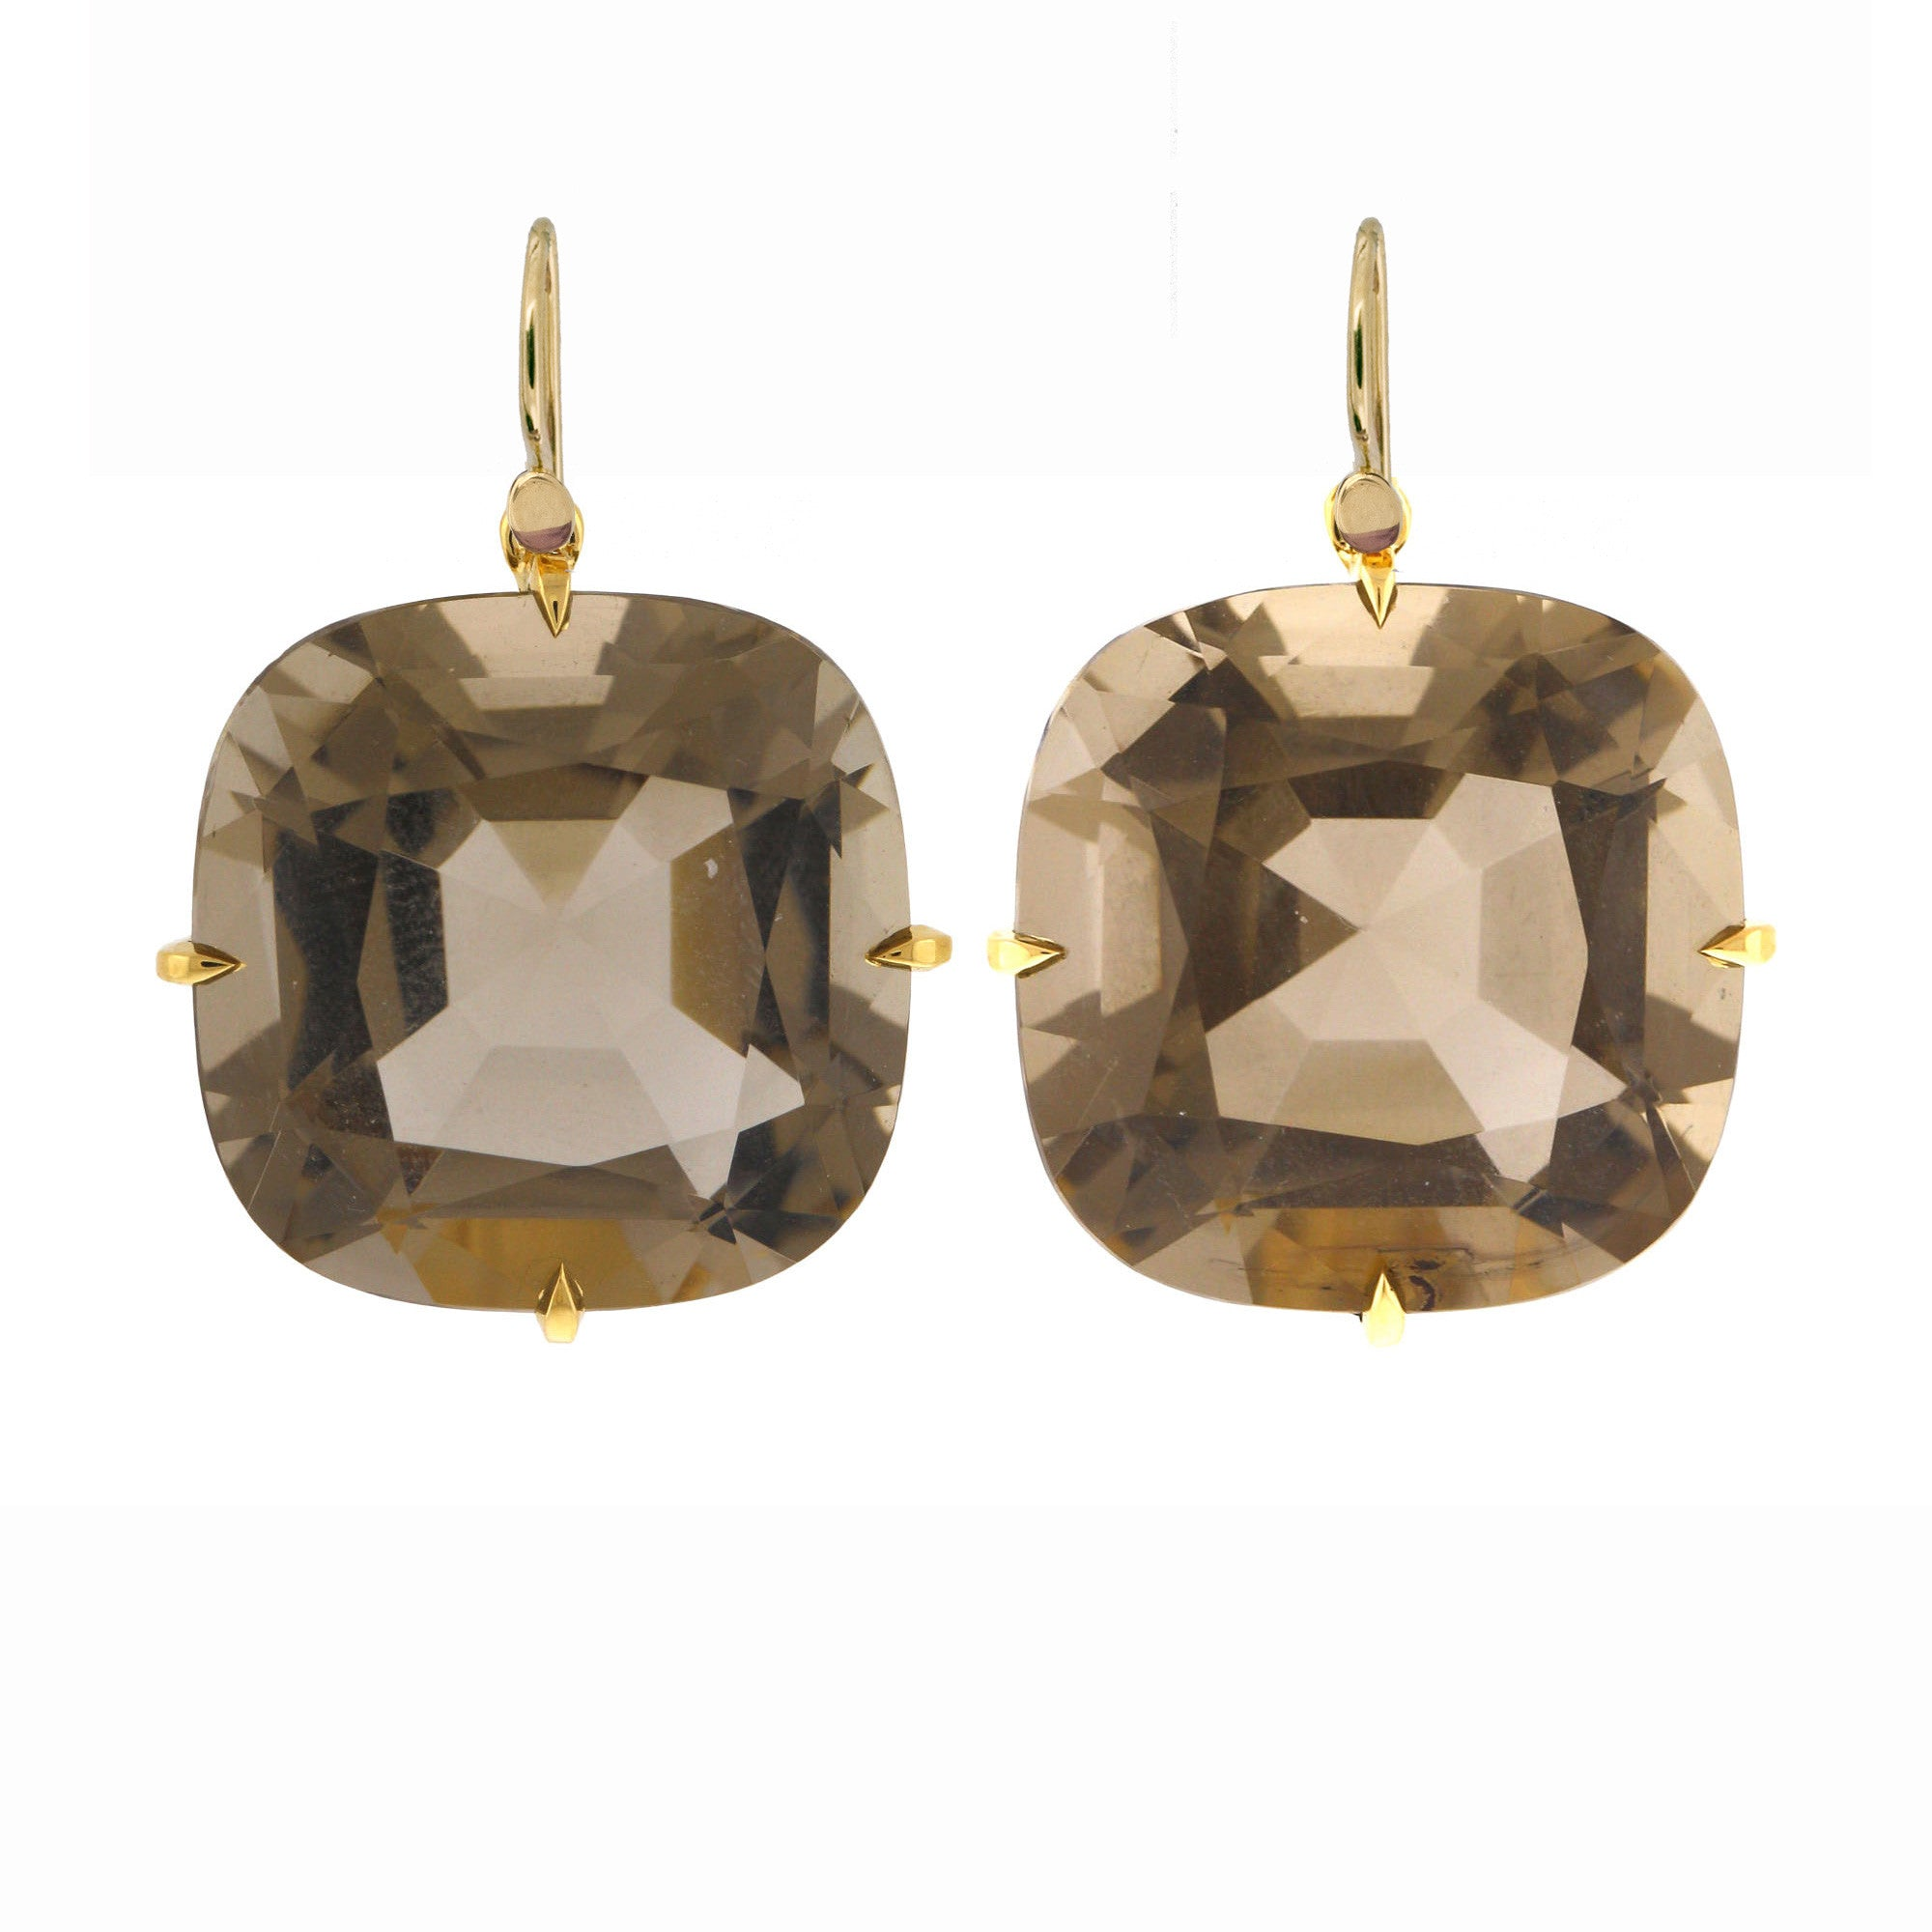 Sable i quartz earrings